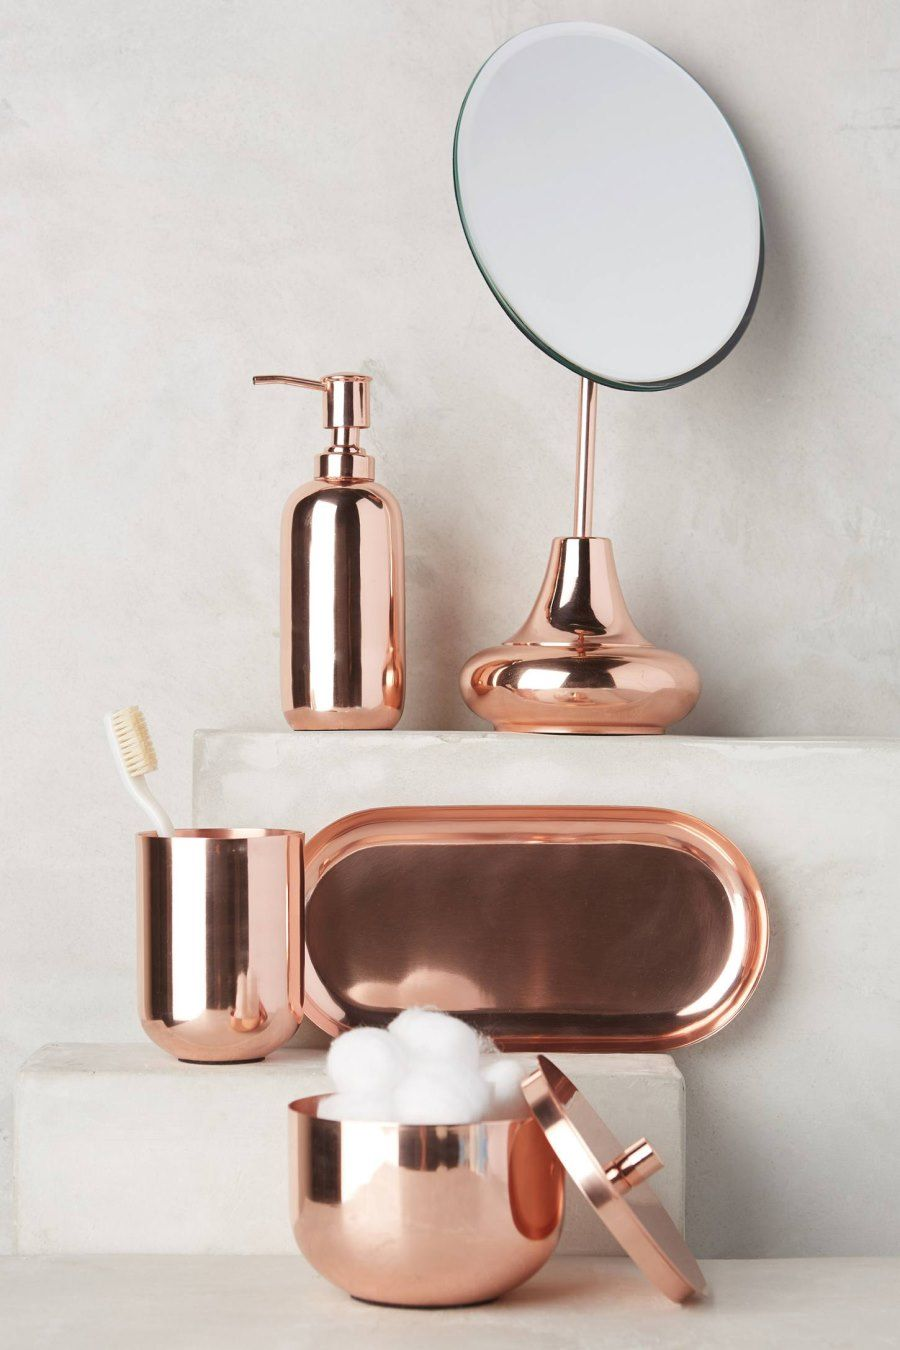 high end bathroom accessories with modern style - Gold Bathroom Accessories Uk